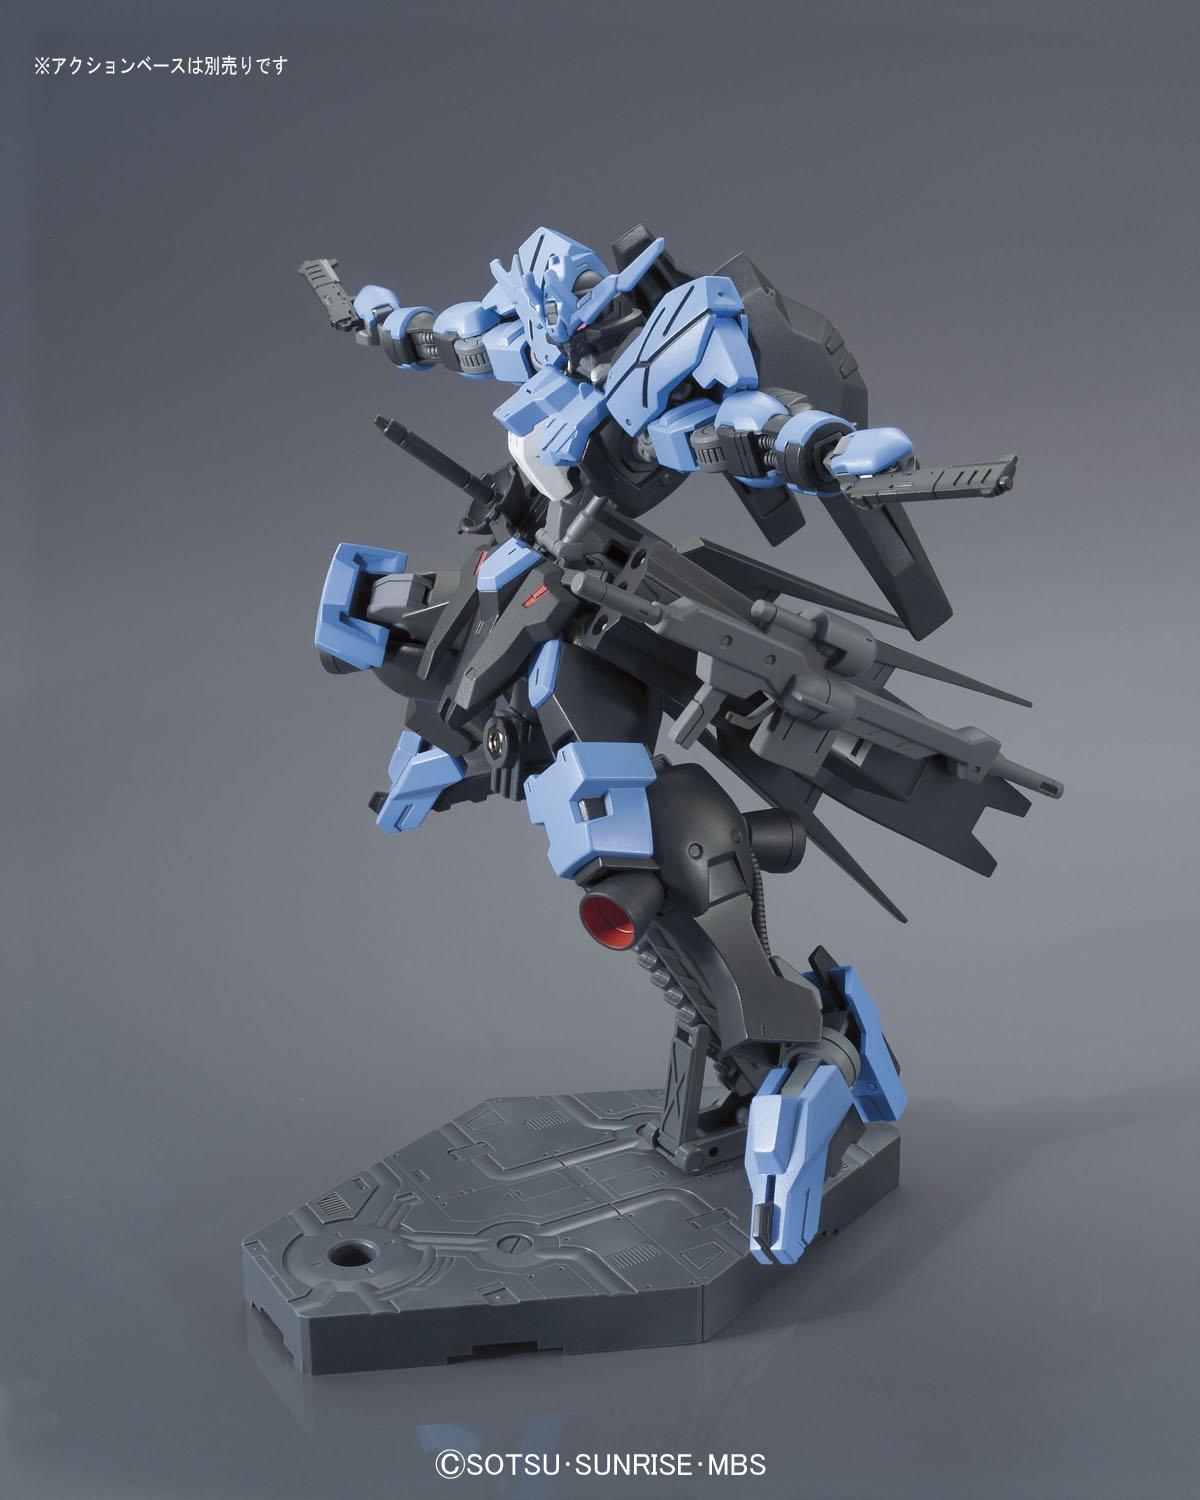 HG 1/144 Gundam Vidar - Release Info, Box art and Official Images